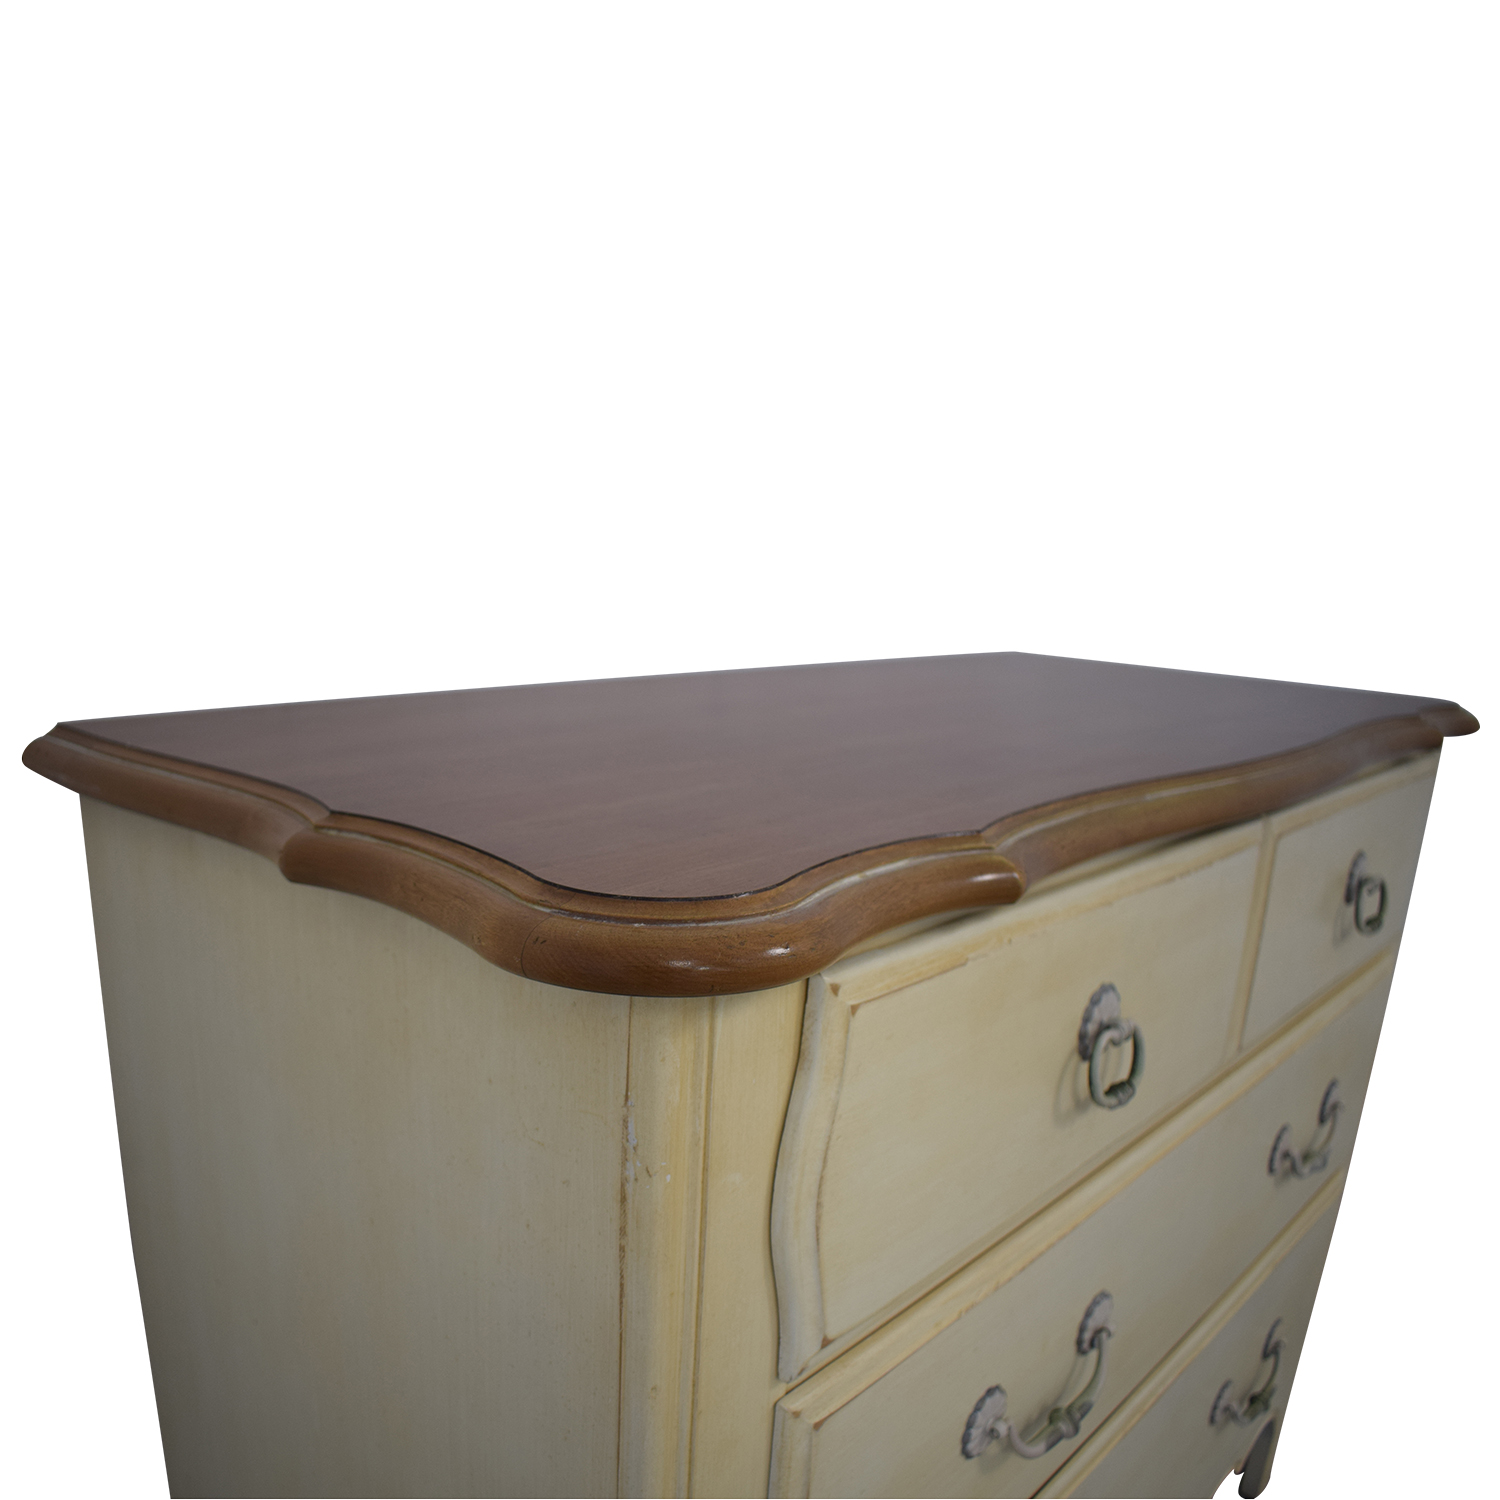 Ethan Allen Ethan Allen Country French Dresser used